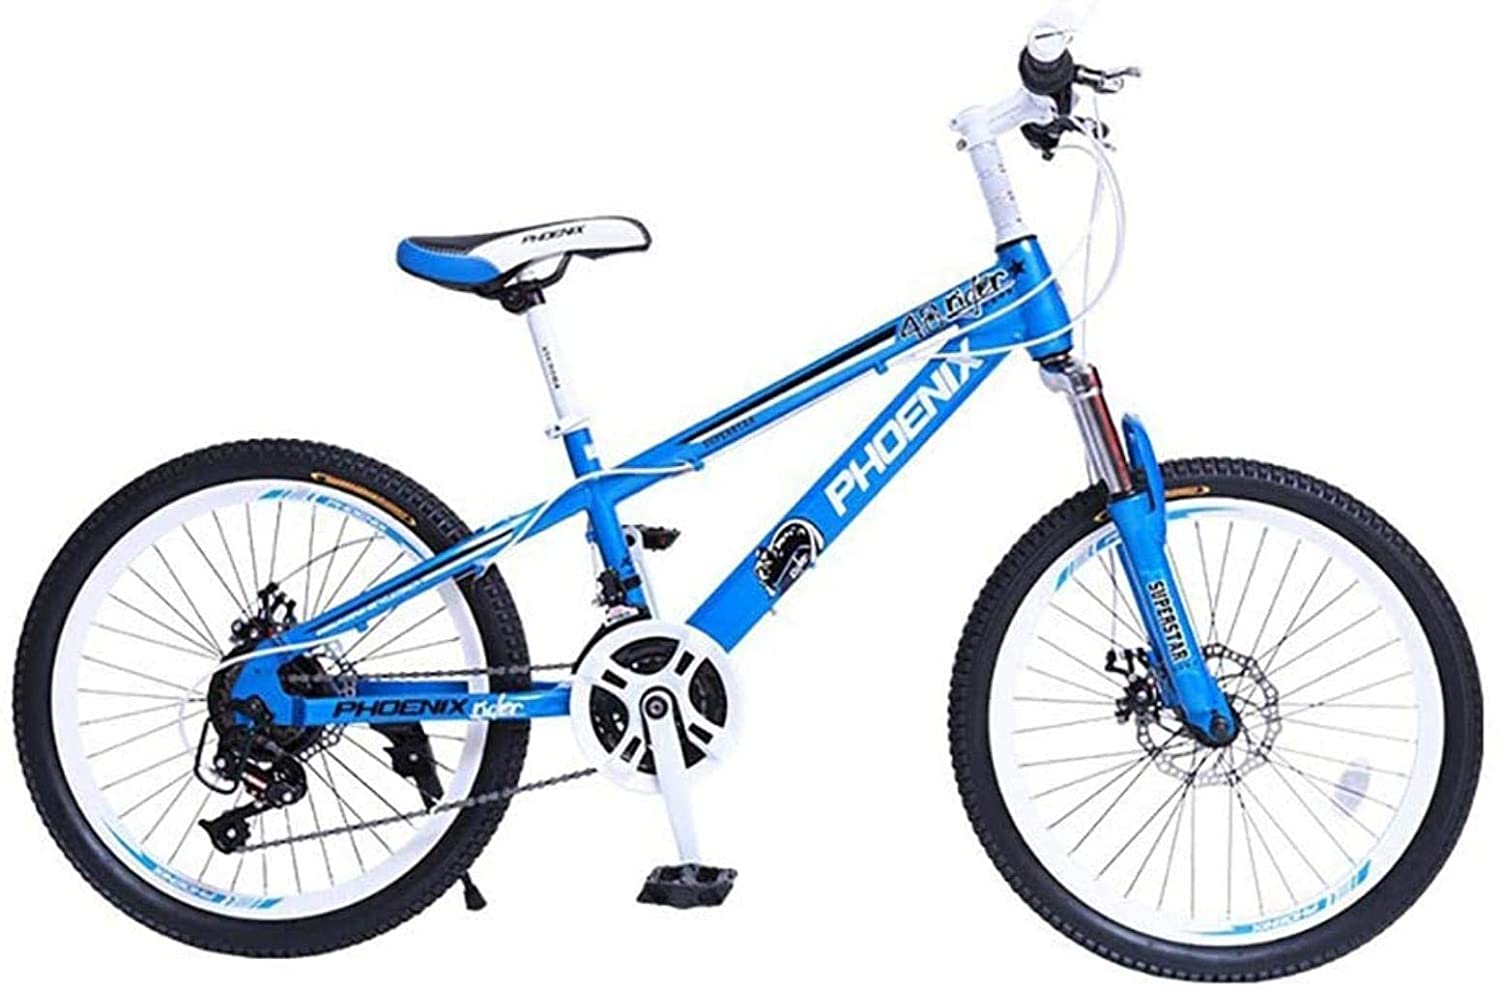 CSS Mountain Bike with Shock Absorption The Suspension Fork, Frame Made of Carbon Steel 21 Gear Non-Slip Handle Bicycle Double Disc Brake 6-11,20Inch